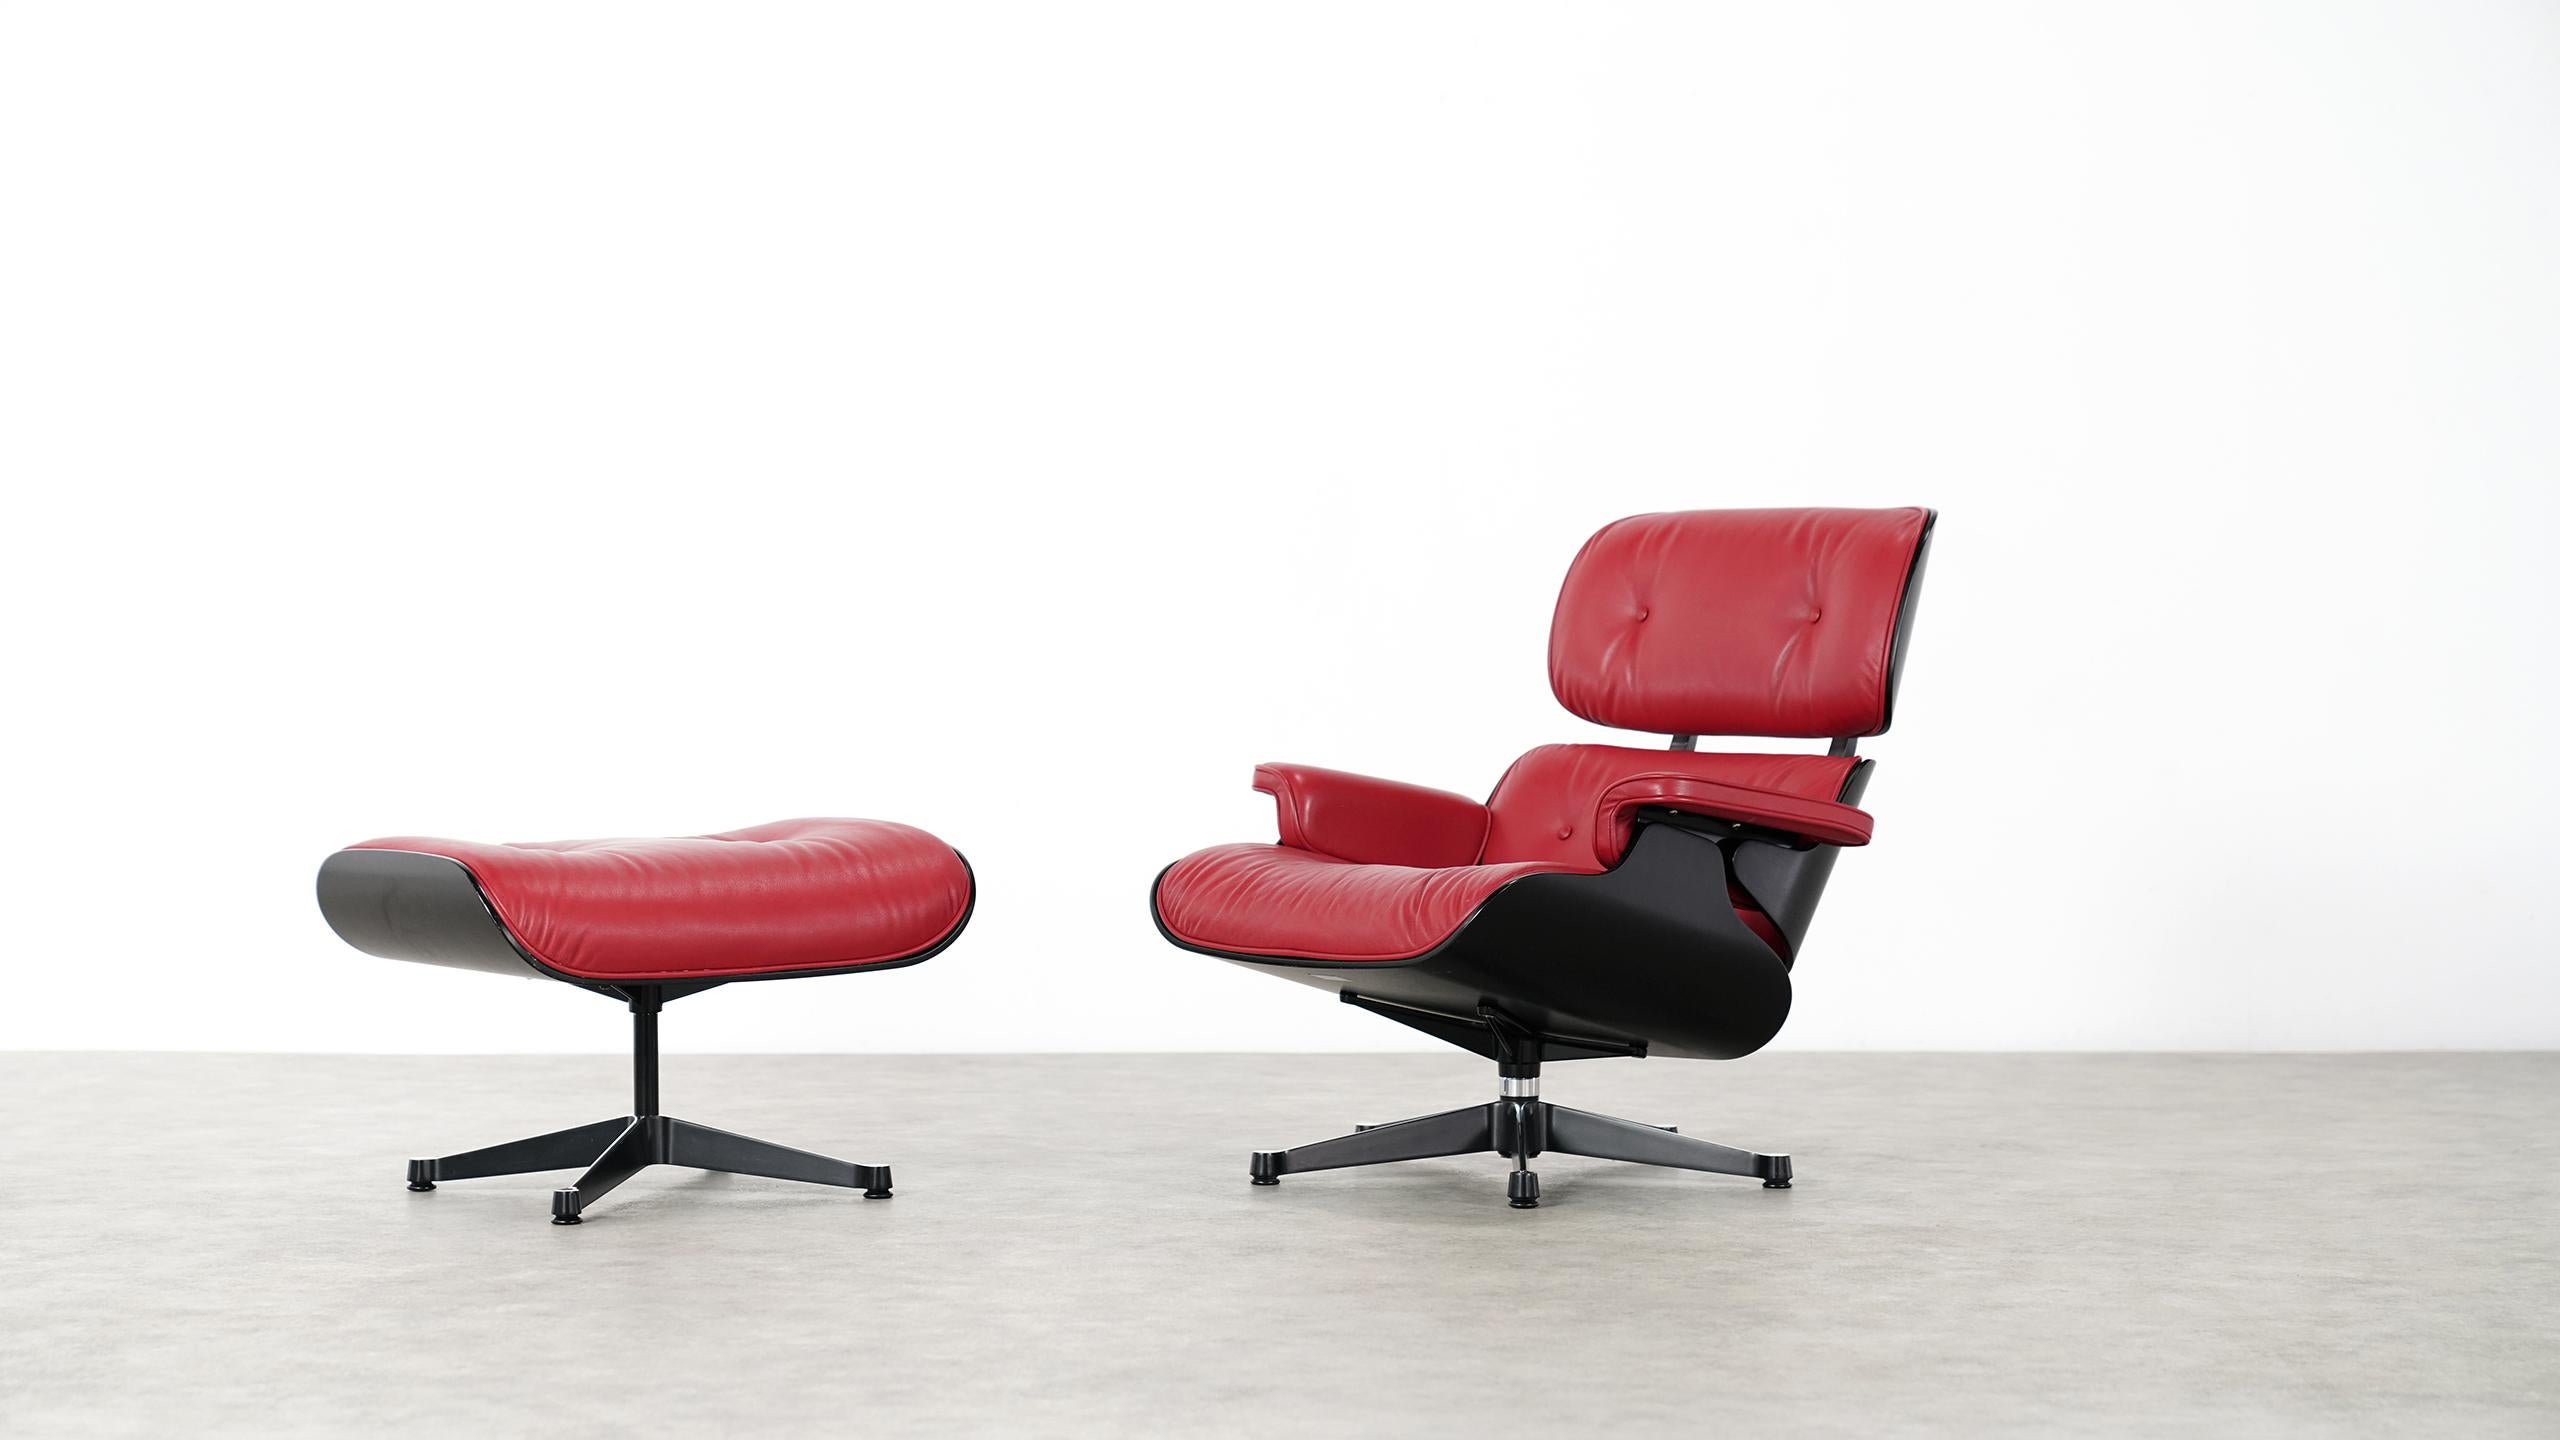 Eames Vitra Vitra Charles Eames Lounge Chair And Ottoman By Vitra Red Leather Black Shells